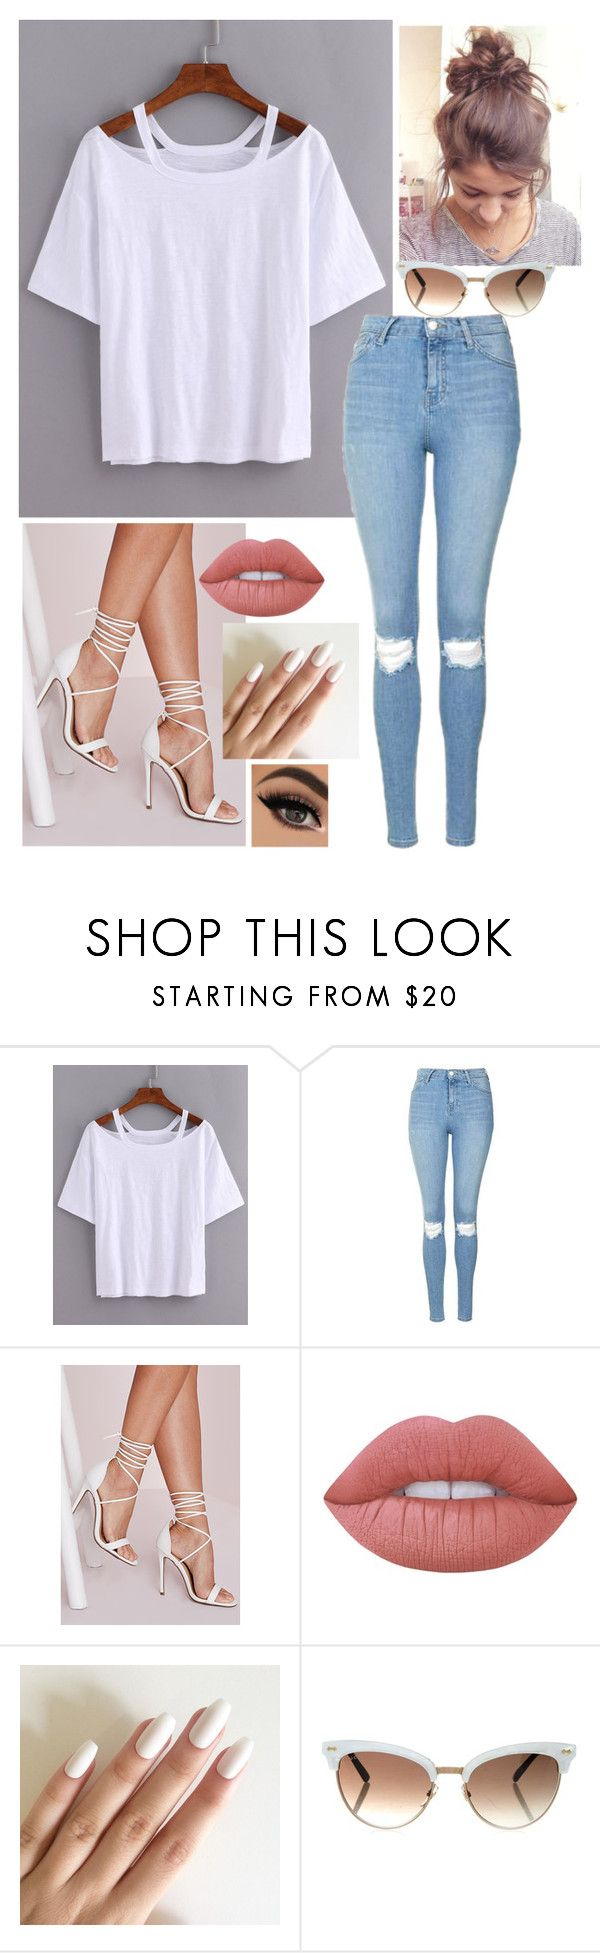 """""""Outfit #109"""" by written-off-blog ❤ liked on Polyvore featuring Topshop, Missguided, Lime Crime and Gucci"""